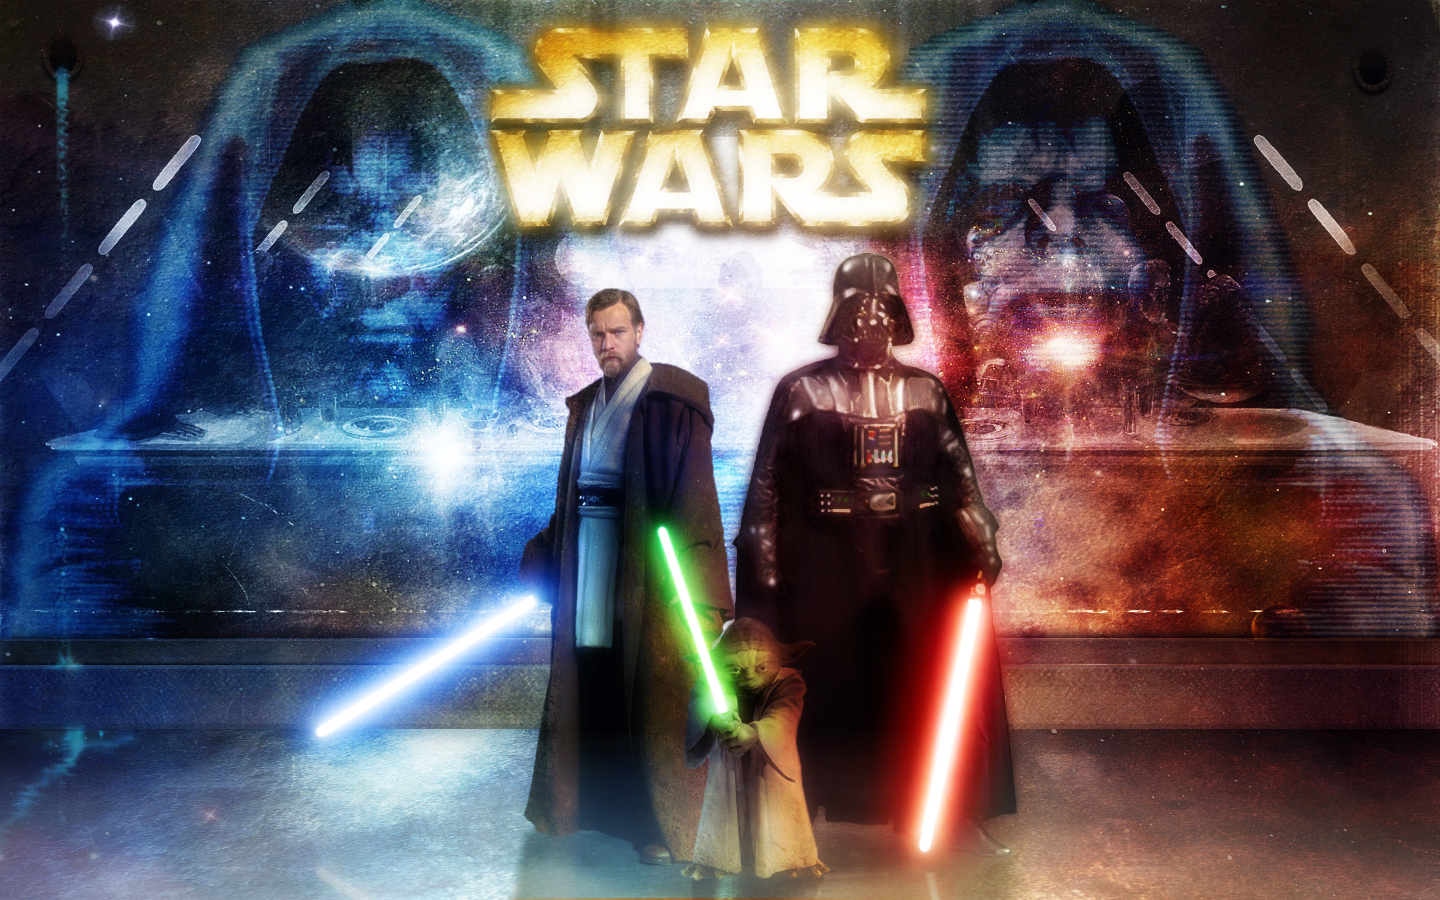 Star Wars Wallpaper Set 9 « Awesome Wallpapers